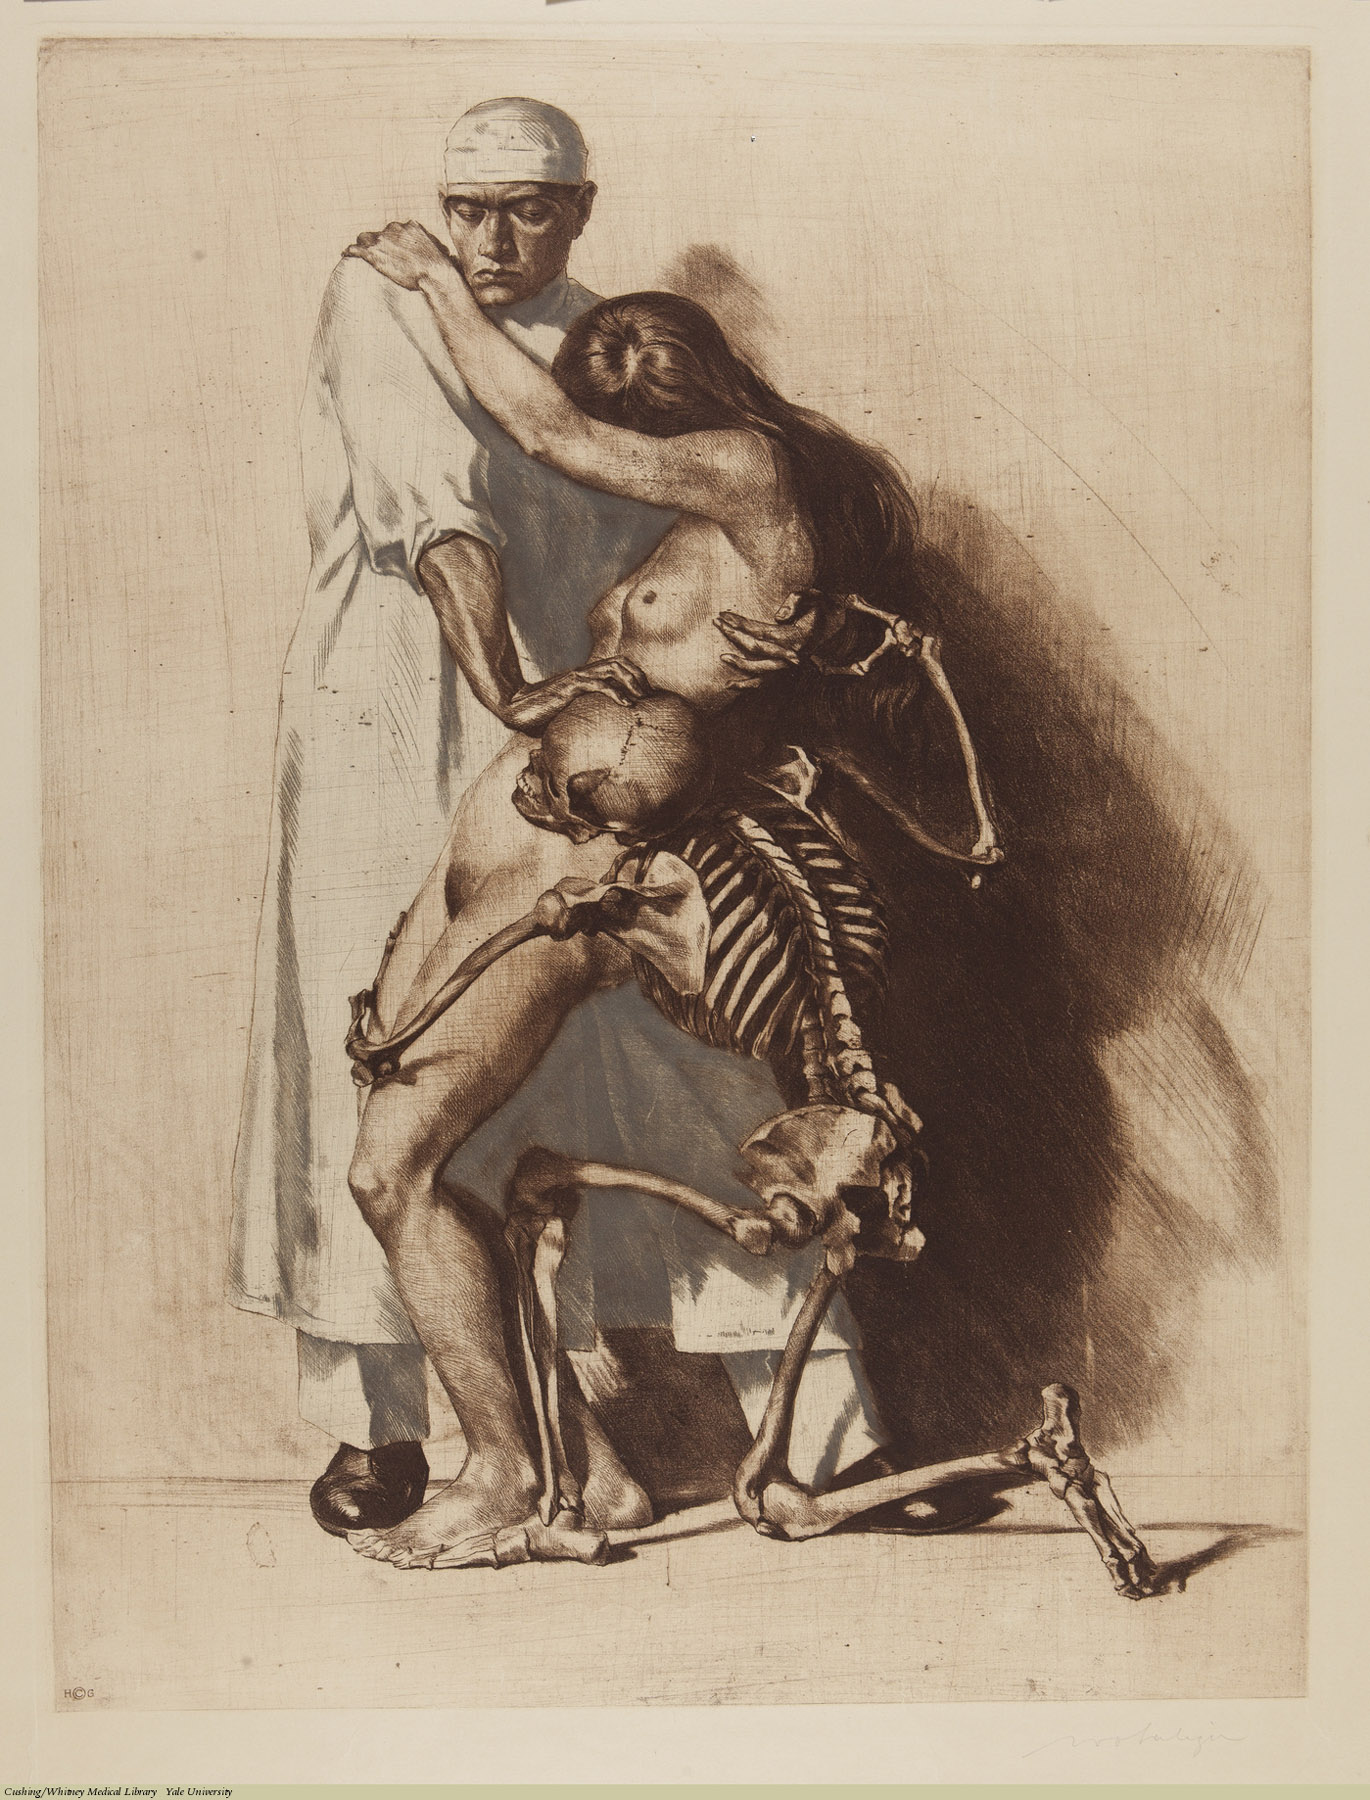 Der Arzt. Ivo Saliger, 1921. Subject: Skeleton As Death, Surgeons, Surgery.